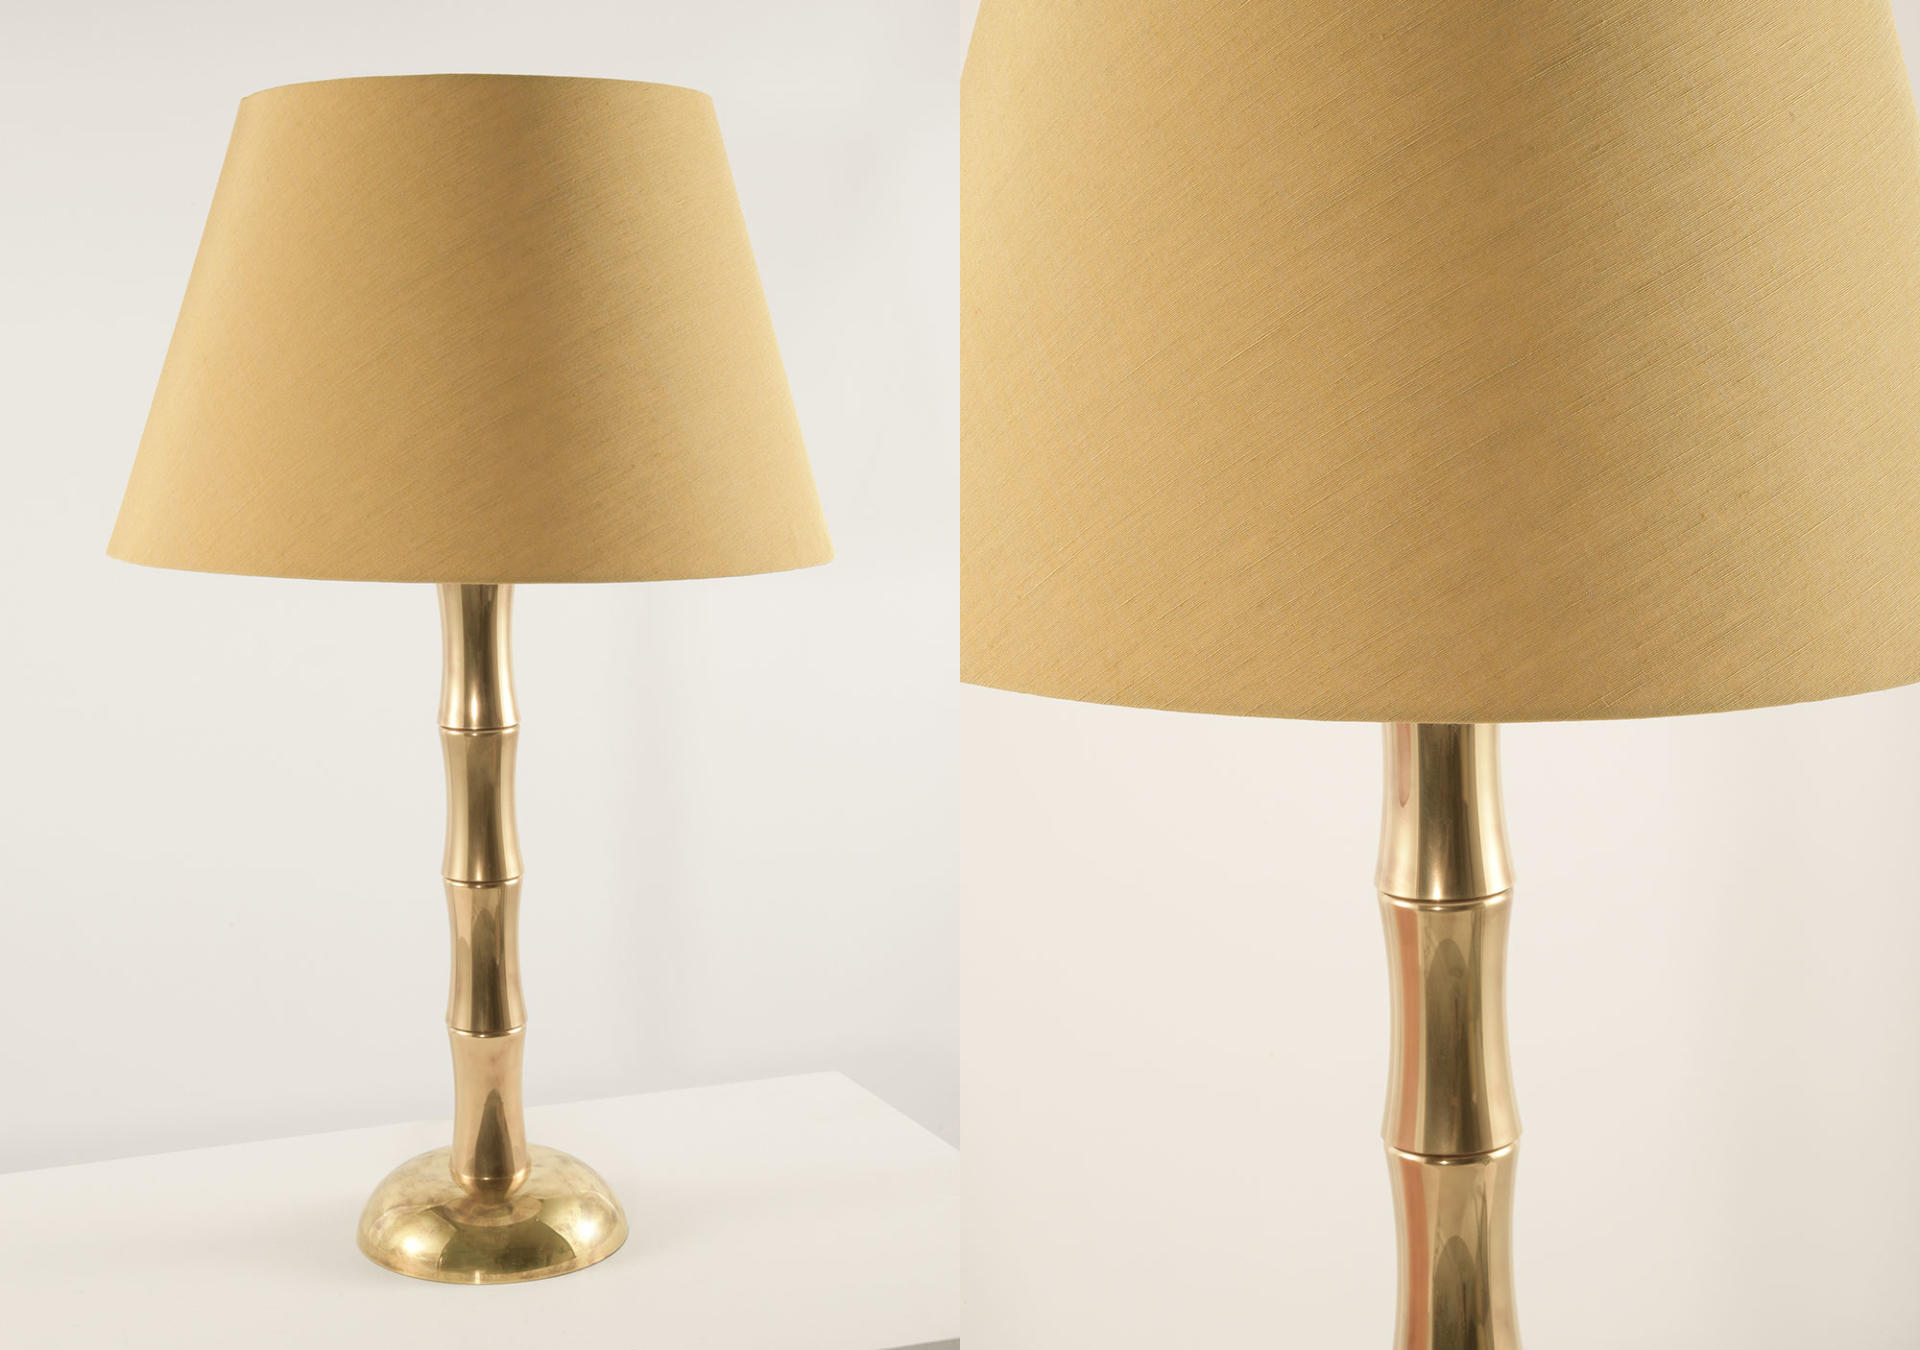 Bamboo_solid_brass_lamp_with_George_Spencer_Designs_Fabric_Strie_Citrus